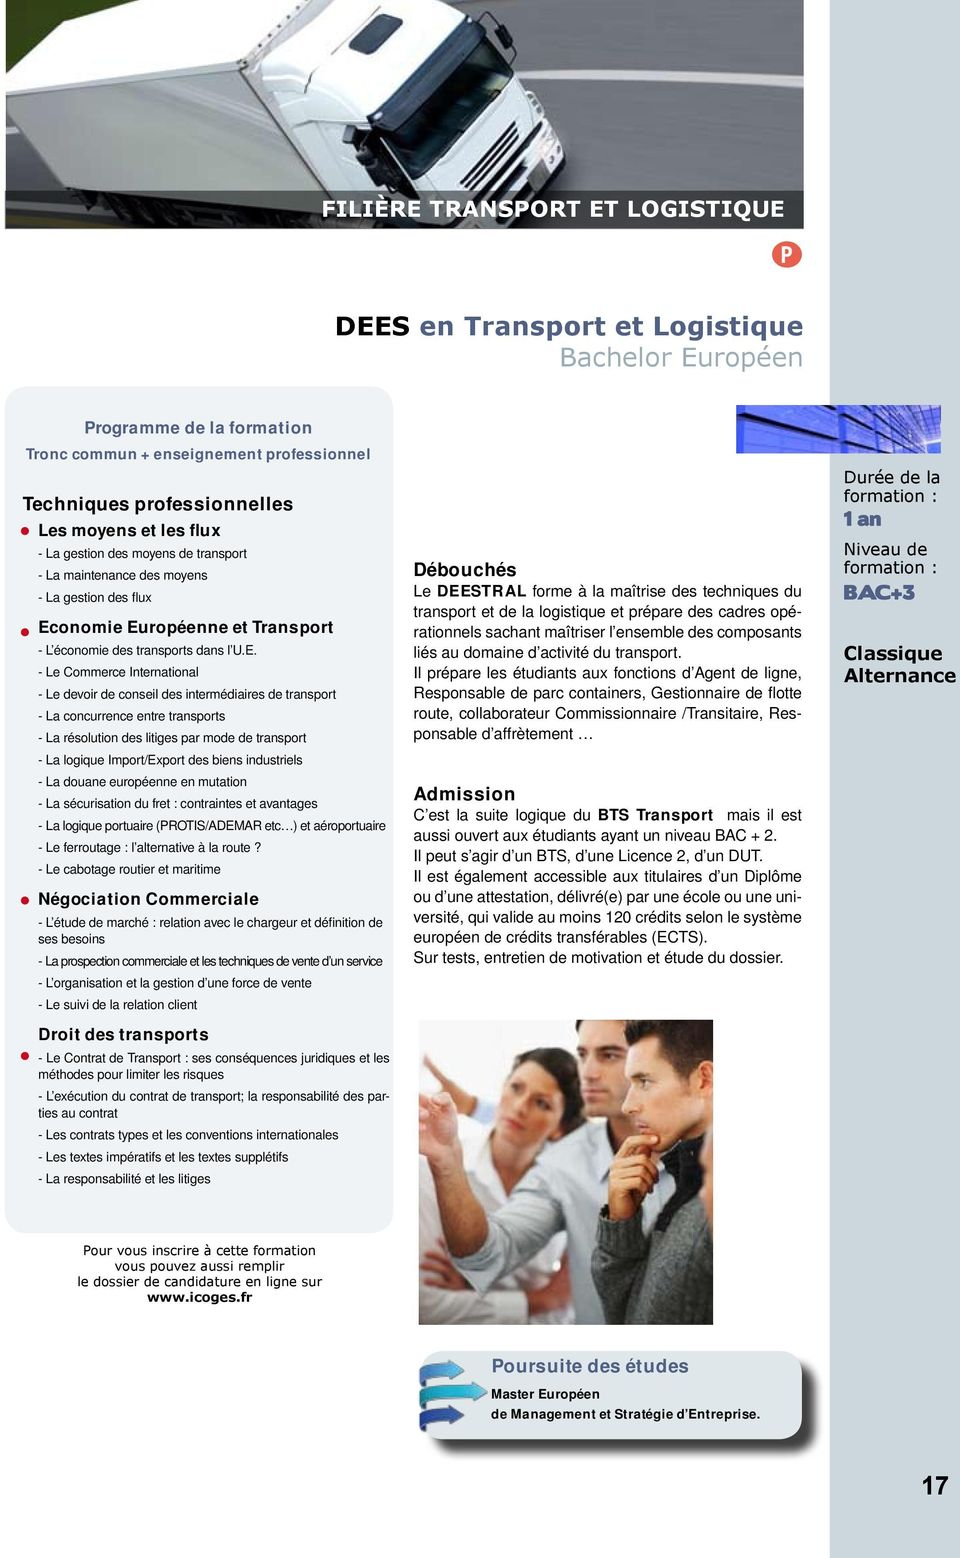 P DEES en Transport et Logistique Bacheor Européen - L économie des transports dans U.E. - Le Commerce Internationa - Le devoir de consei des intermédiaires de transport - La concurrence entre